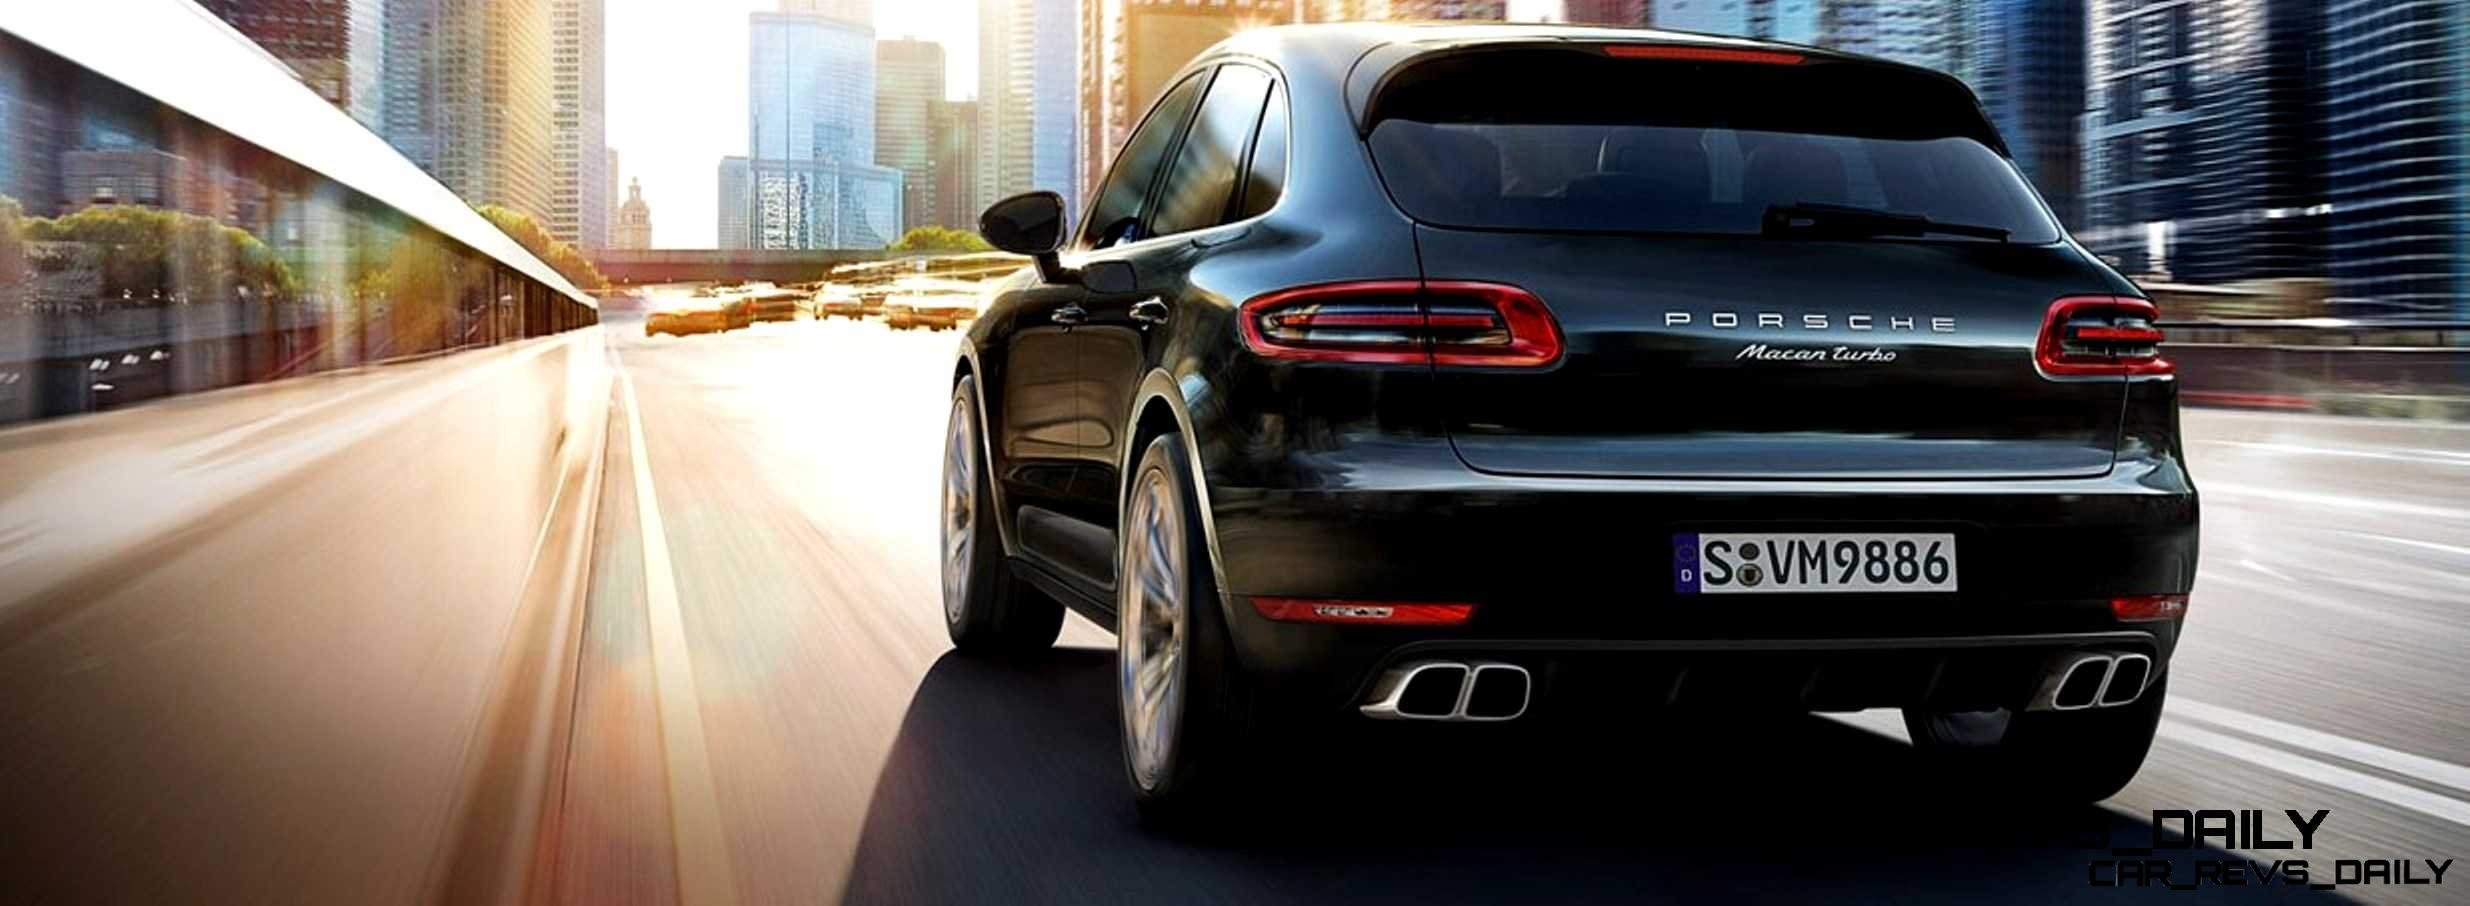 2015 Porsche Macan - Latest Images - CarRevsDaily.com 58